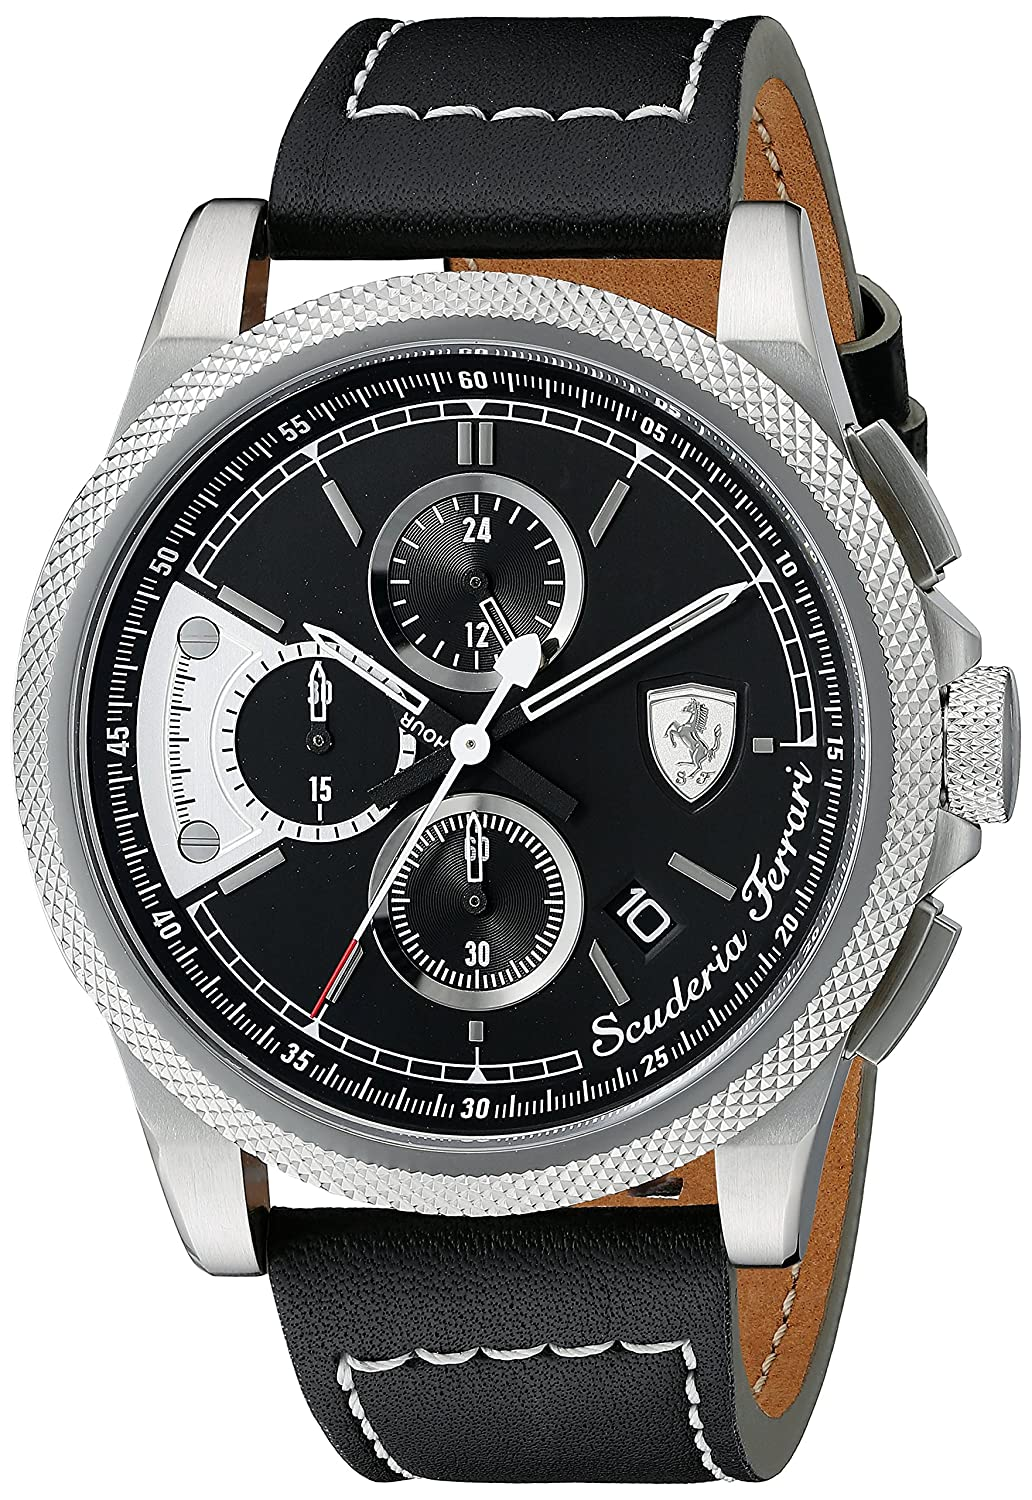 8f8ade660 Amazon.com: Ferrari Men's 0830275 FORMULA ITALIA S Stainless Steel Watch  with Black Leather Band: Watches